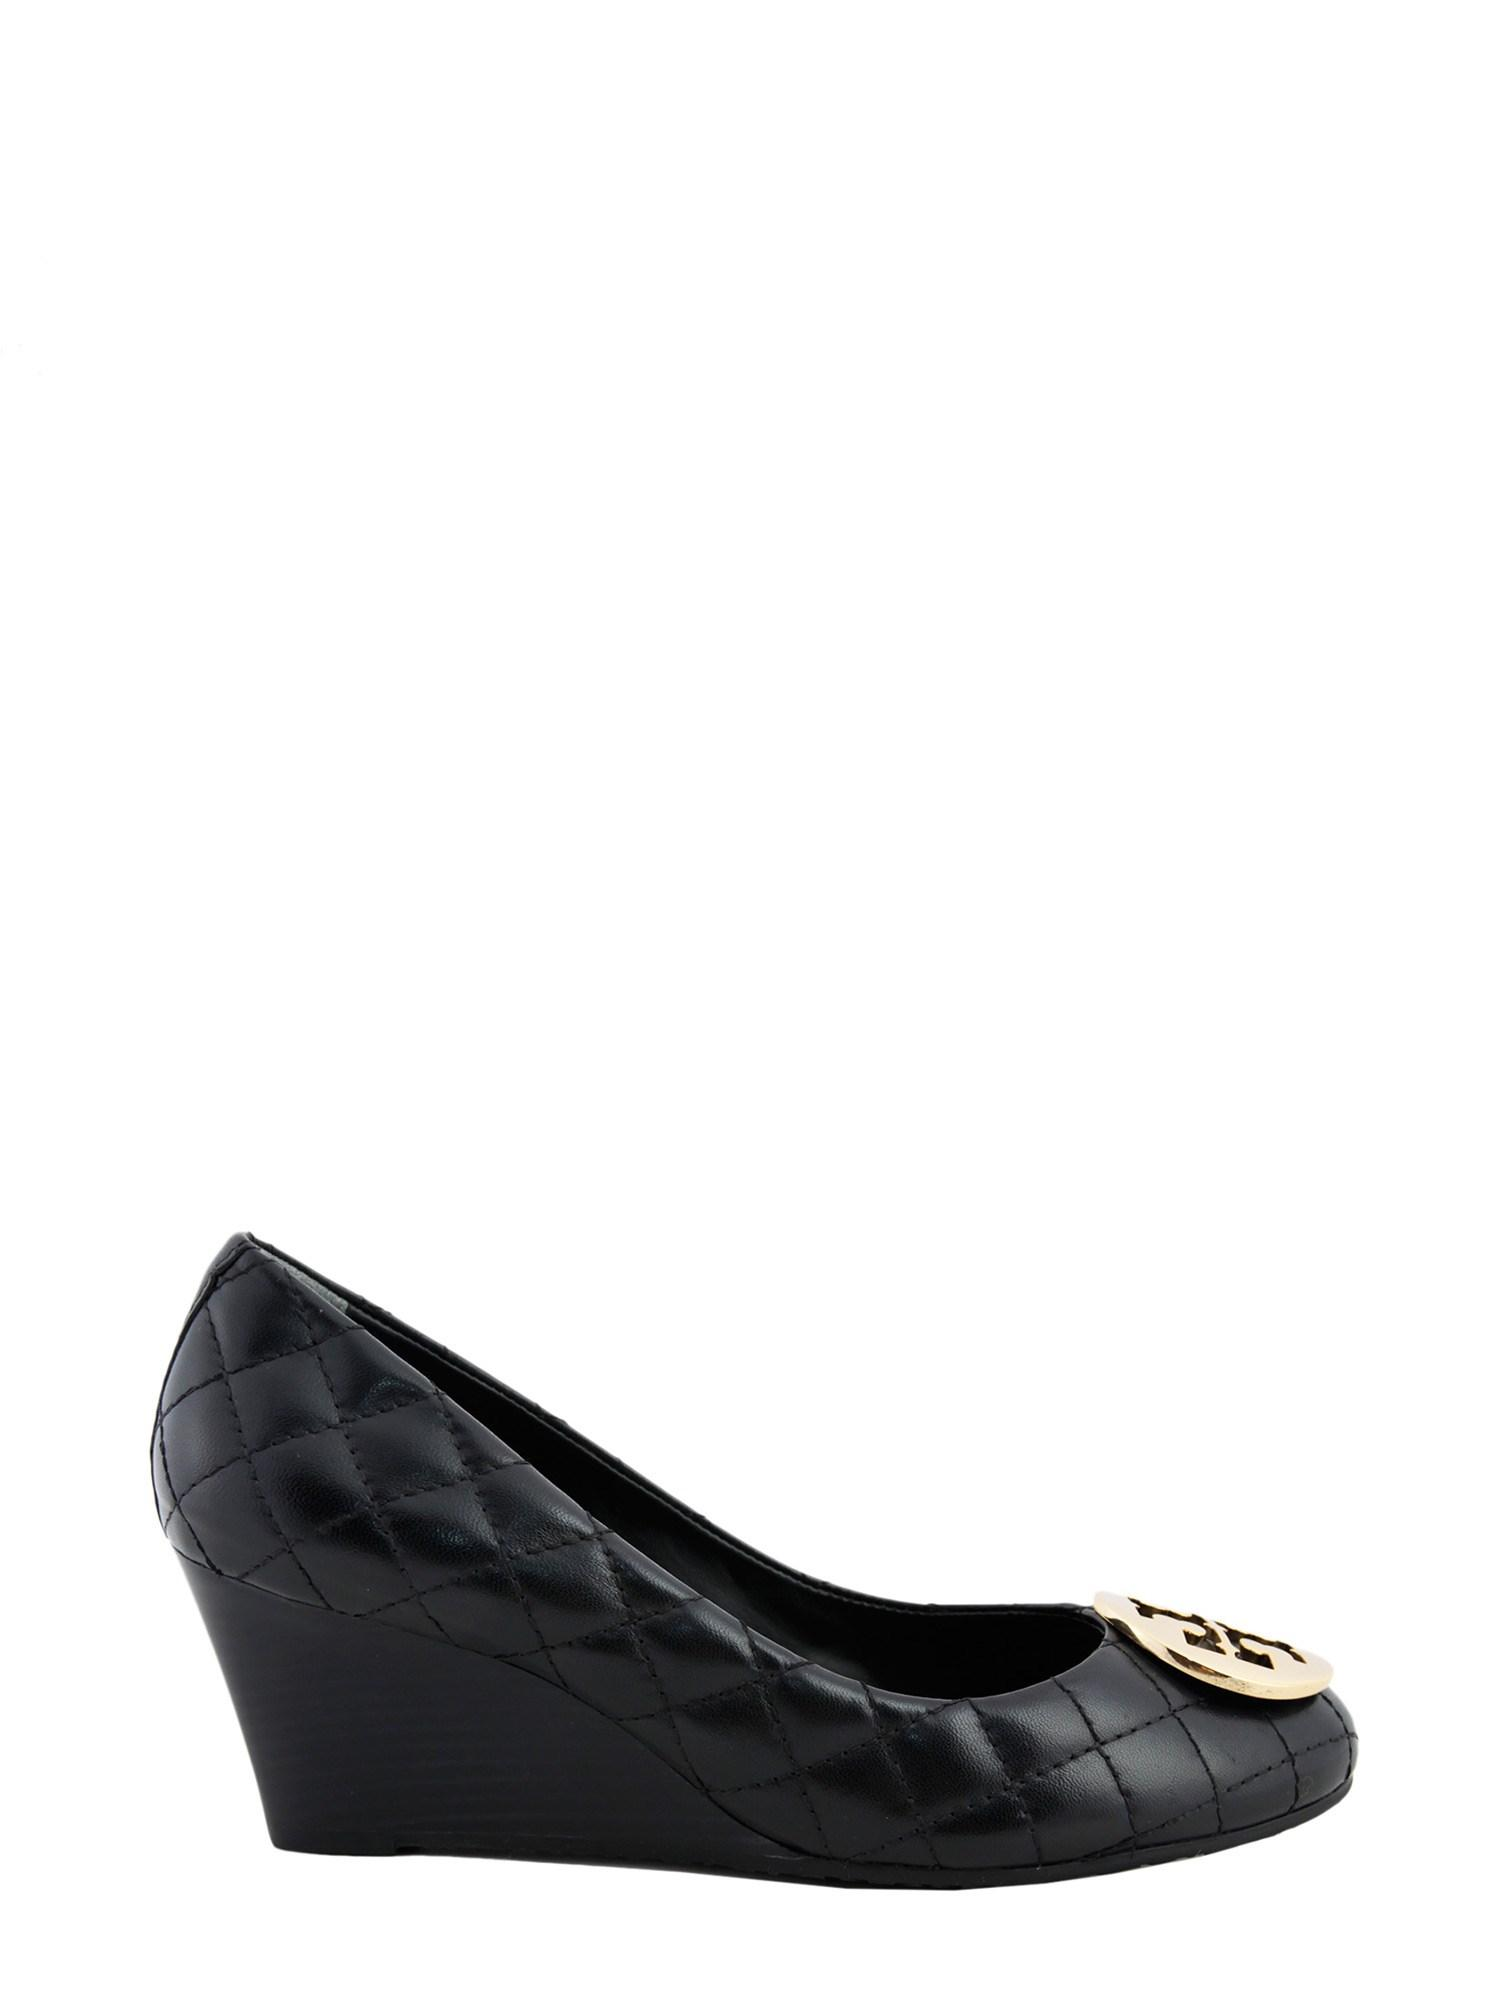 0f0a350a3d5a Lyst - Tory Burch Quinn Quilted Leather Wedges in Black